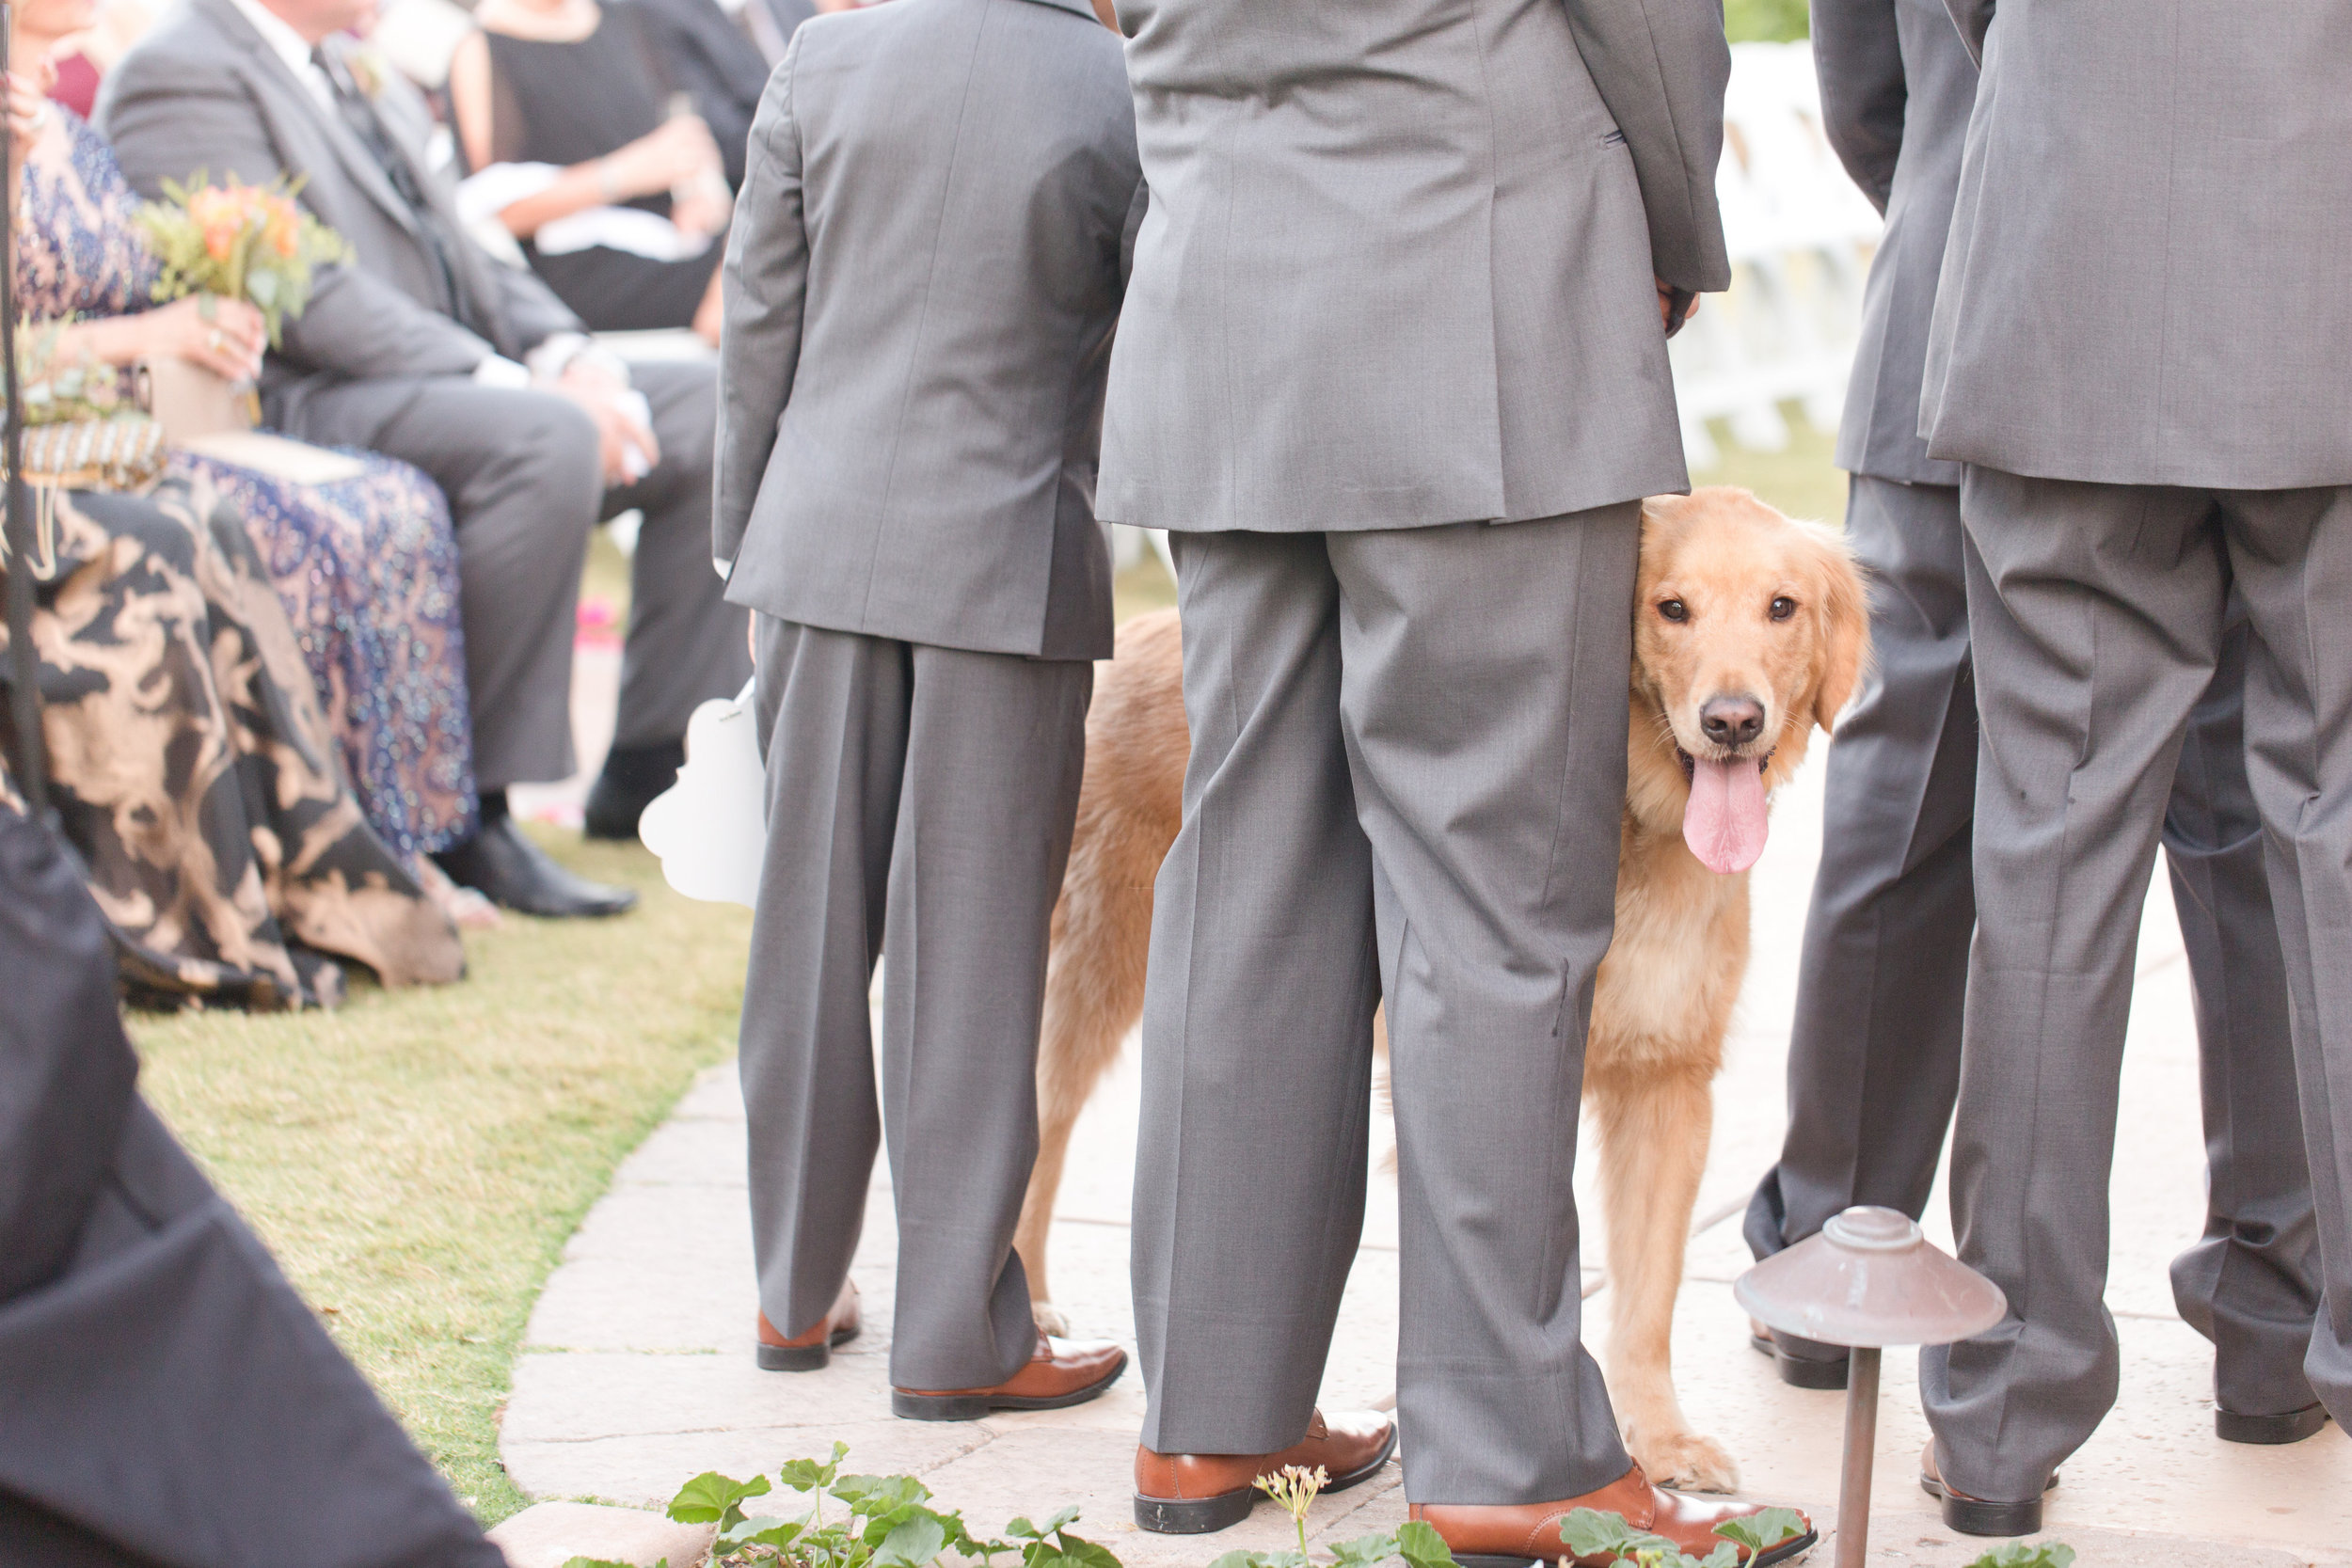 Phoenix-Scottsdale-Arizona-Wedding-Planner-Wedding-Venue-Destination-Wedding-Planner, Omni Montelucia weddings, sunset weddings, Arizona Sunset weddings, wedding details, bridal party, groomsmen, bridal party dog, wedding dog, ring bearer dog